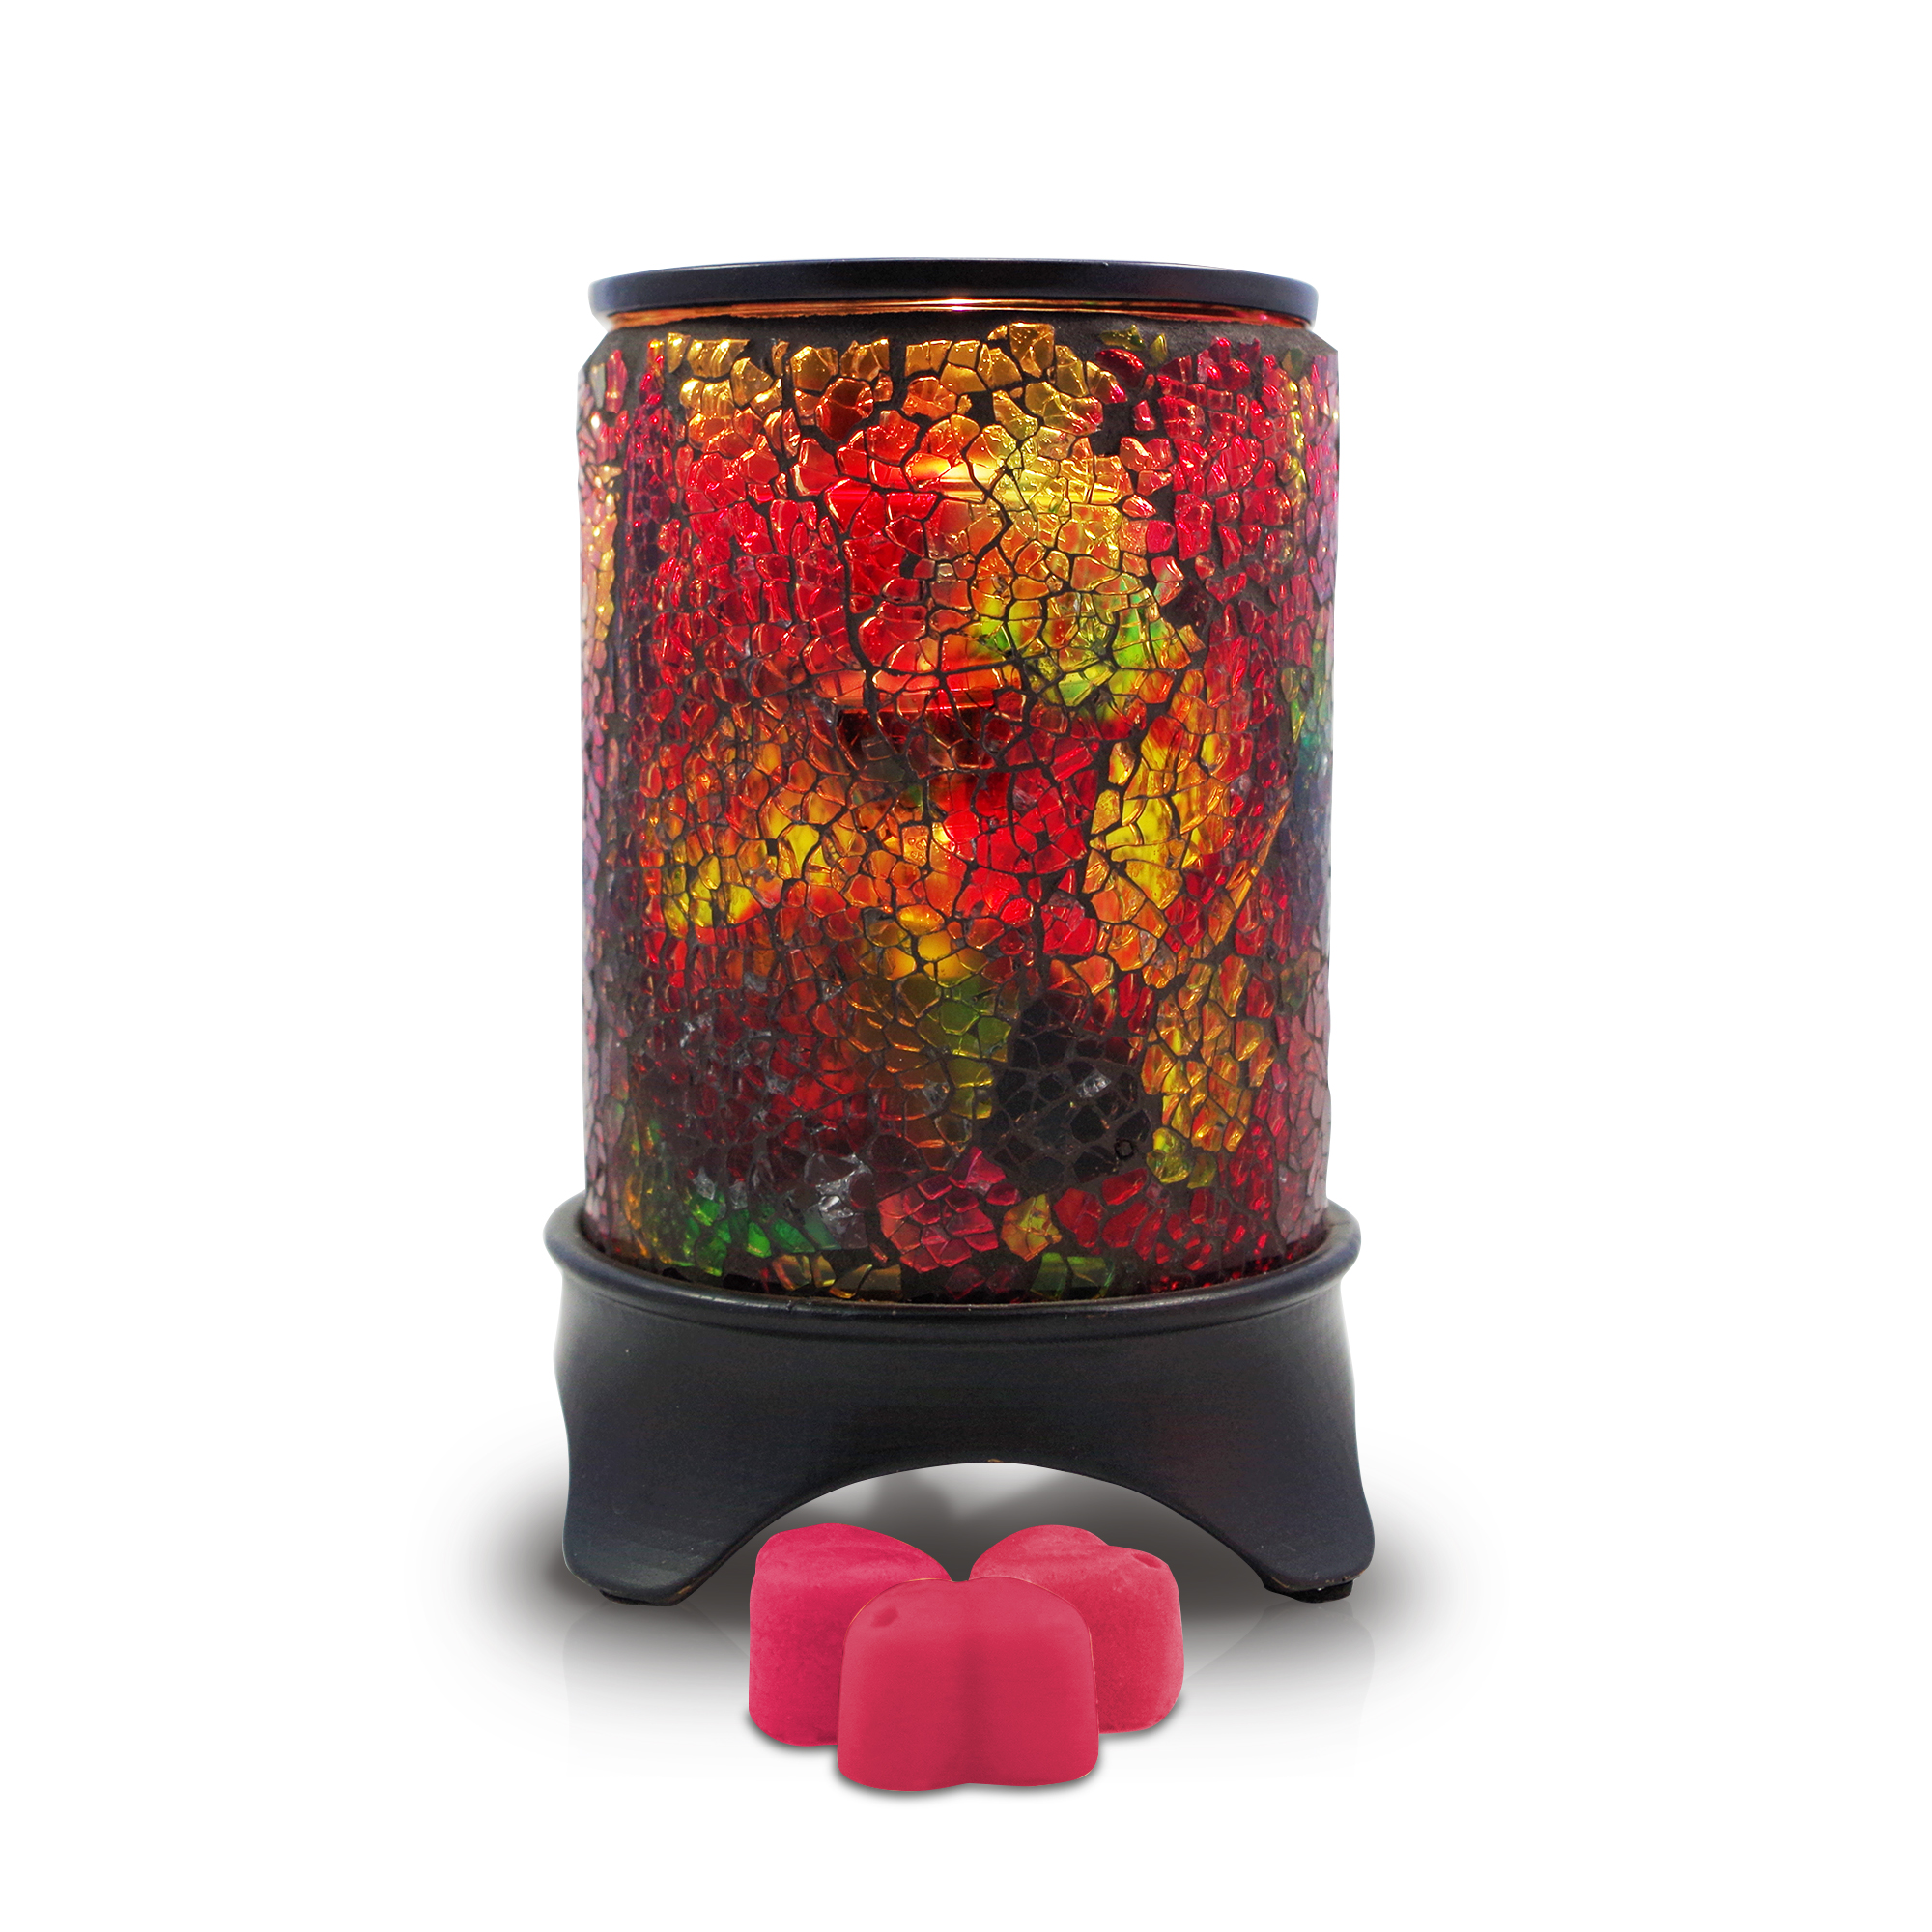 Our Rainbow Wax Warmer with three rose petal celebration beeswax melts.